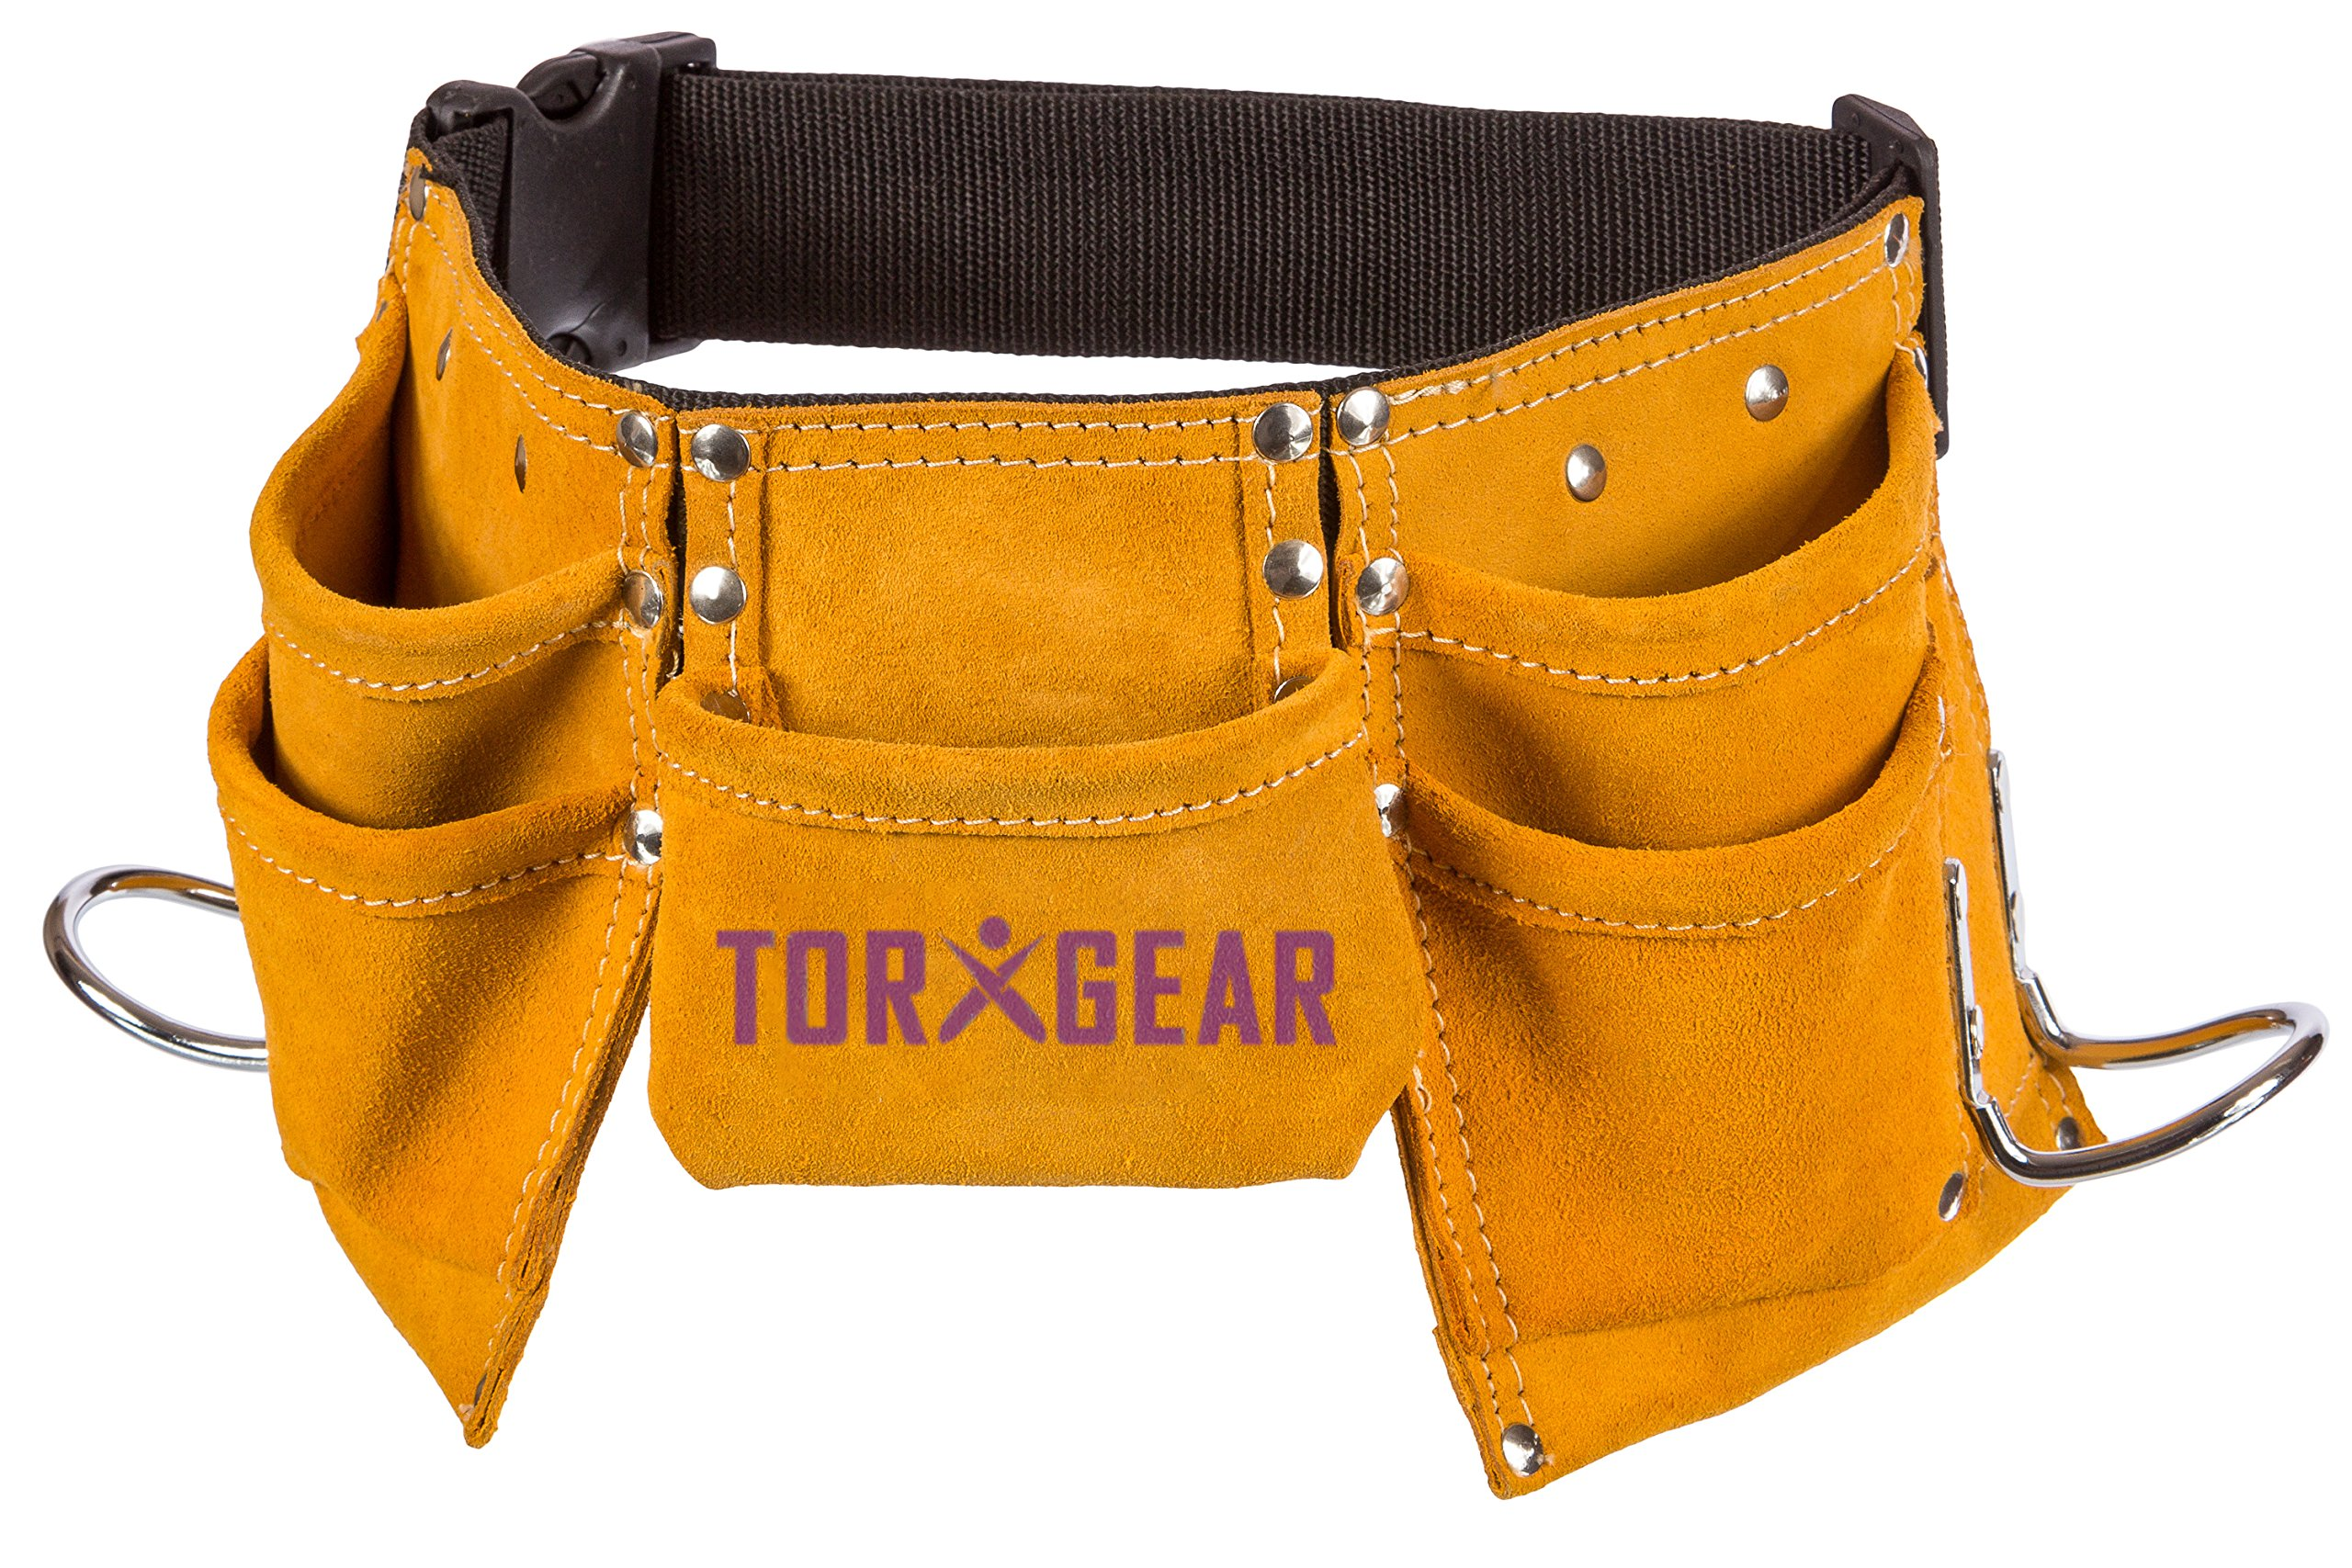 Childs Leather Tool Belt - Suede Leather Working Tool Pouch for Youth Dress  Up and Costume 07f8ccfcf9f76